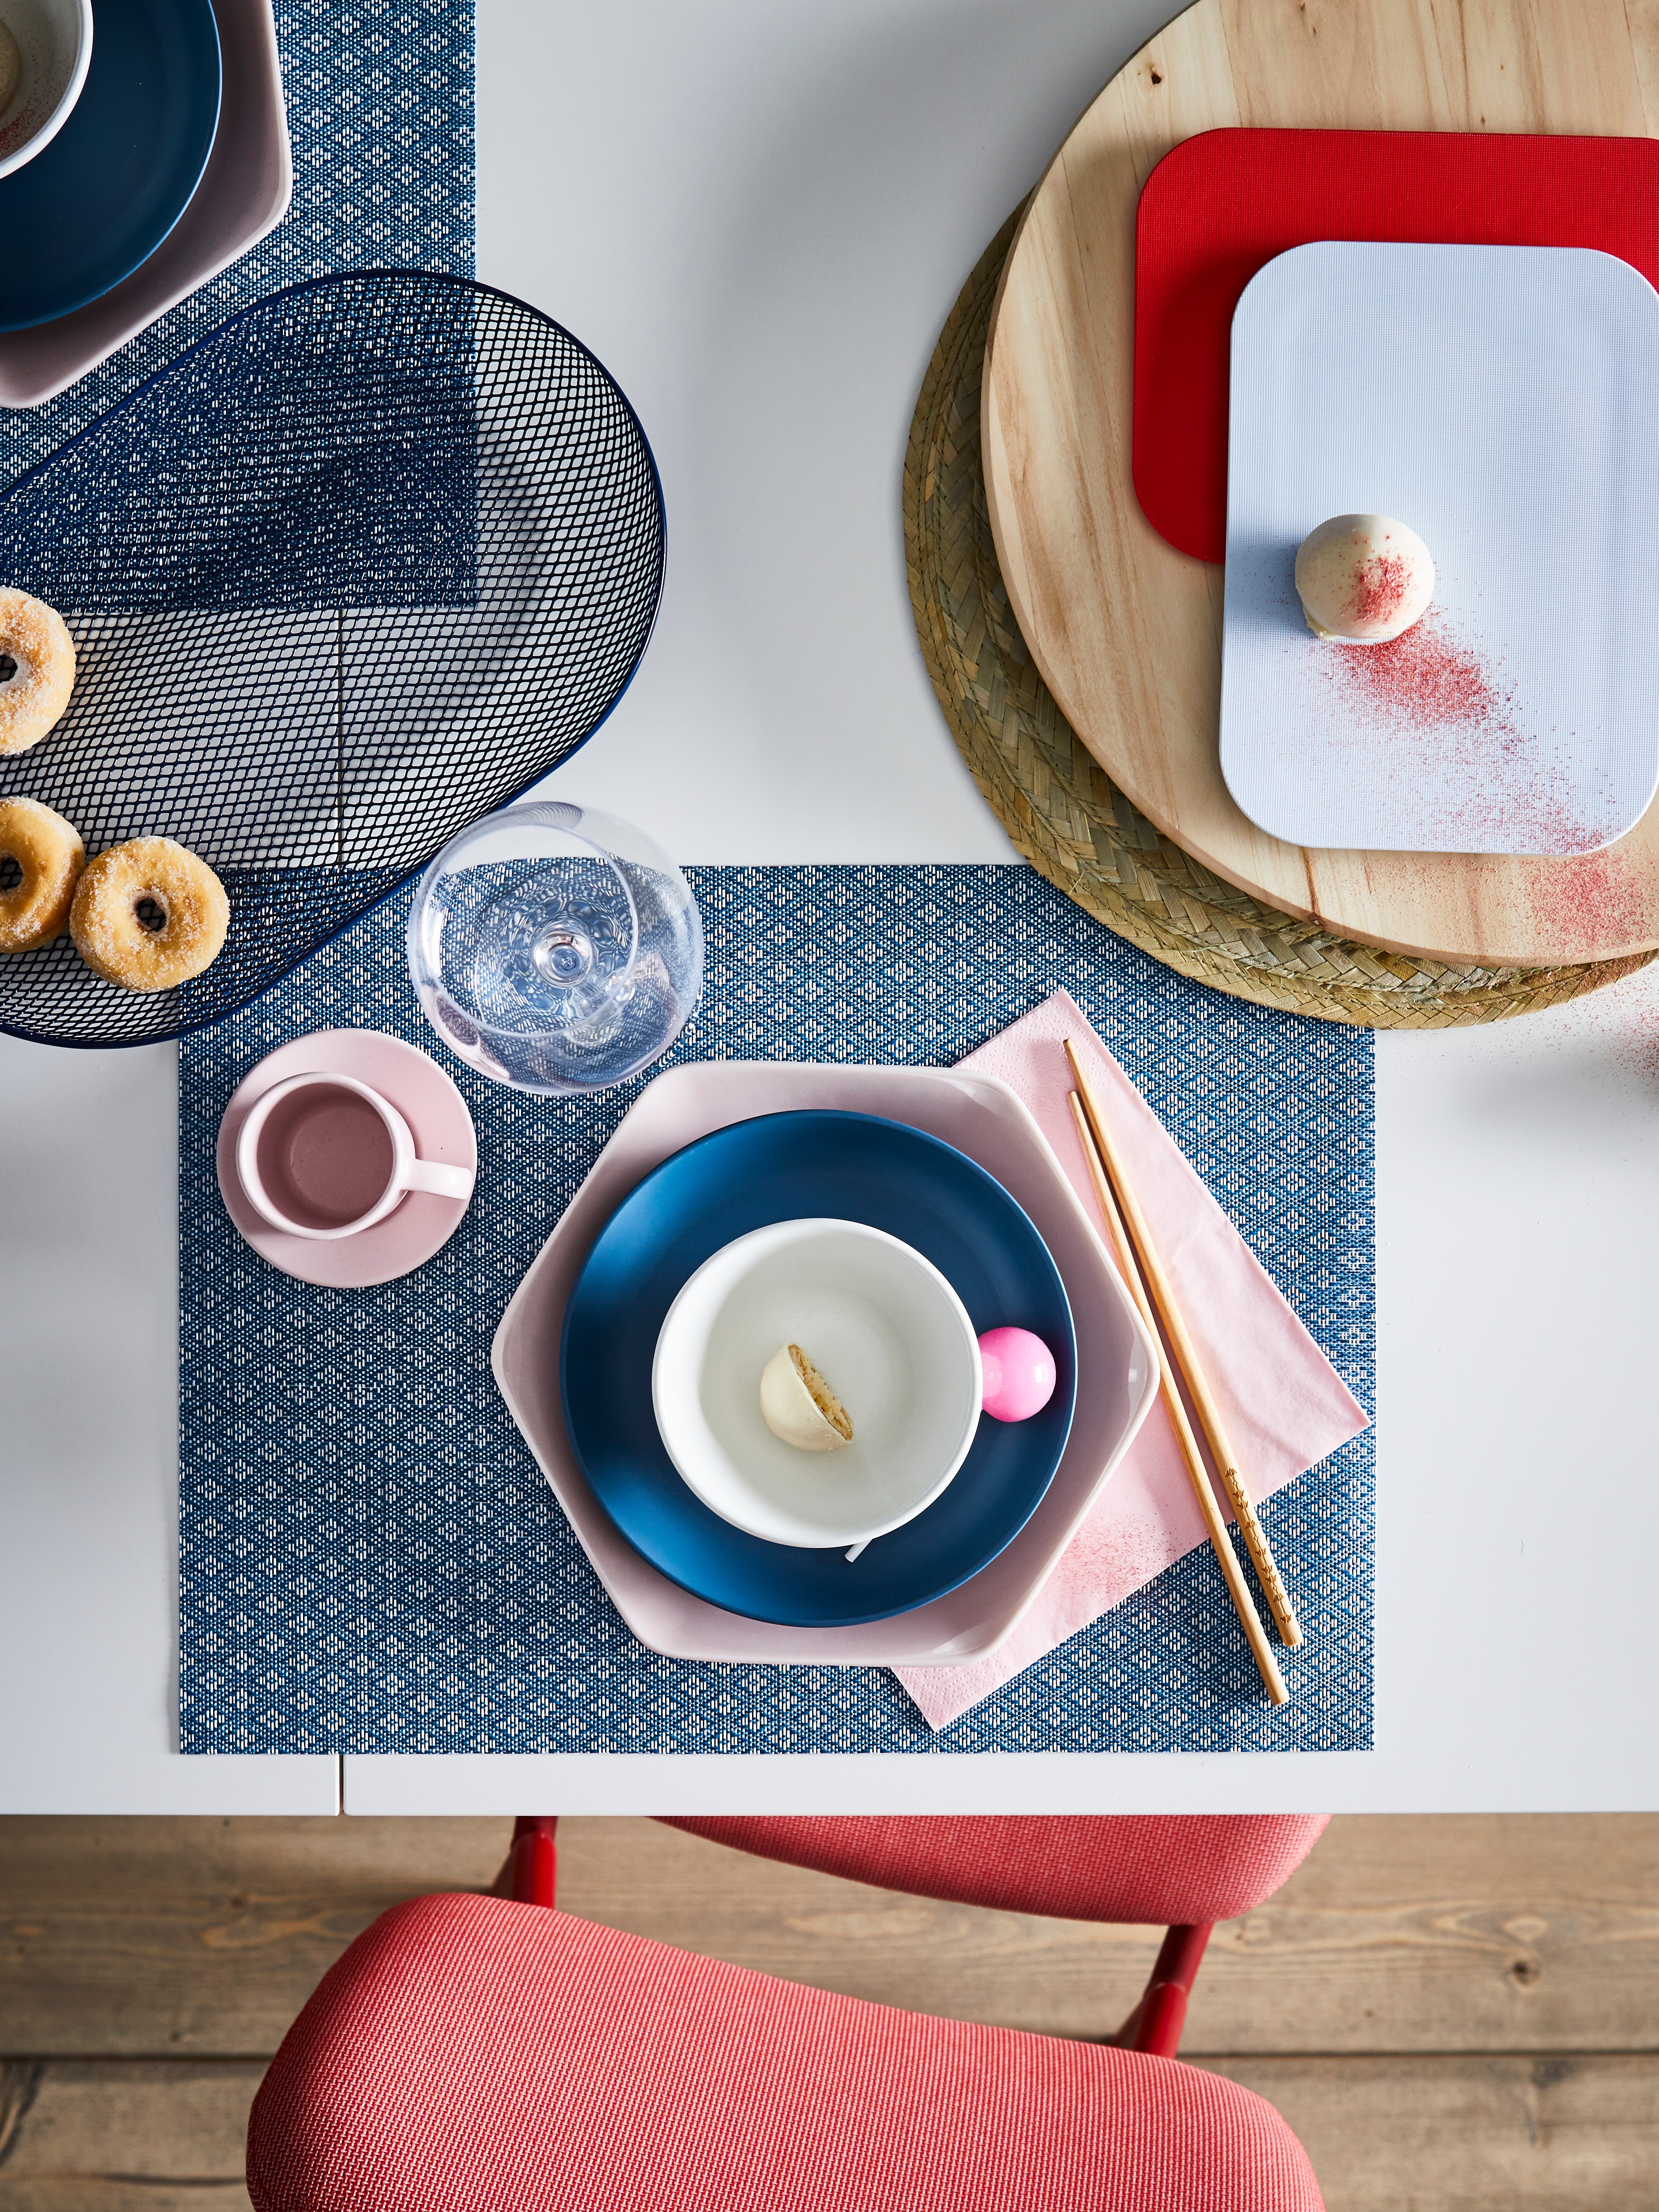 GALLRA place mat in blue, with blue and pink bowls on a table, chop sticks and various other tableware items.